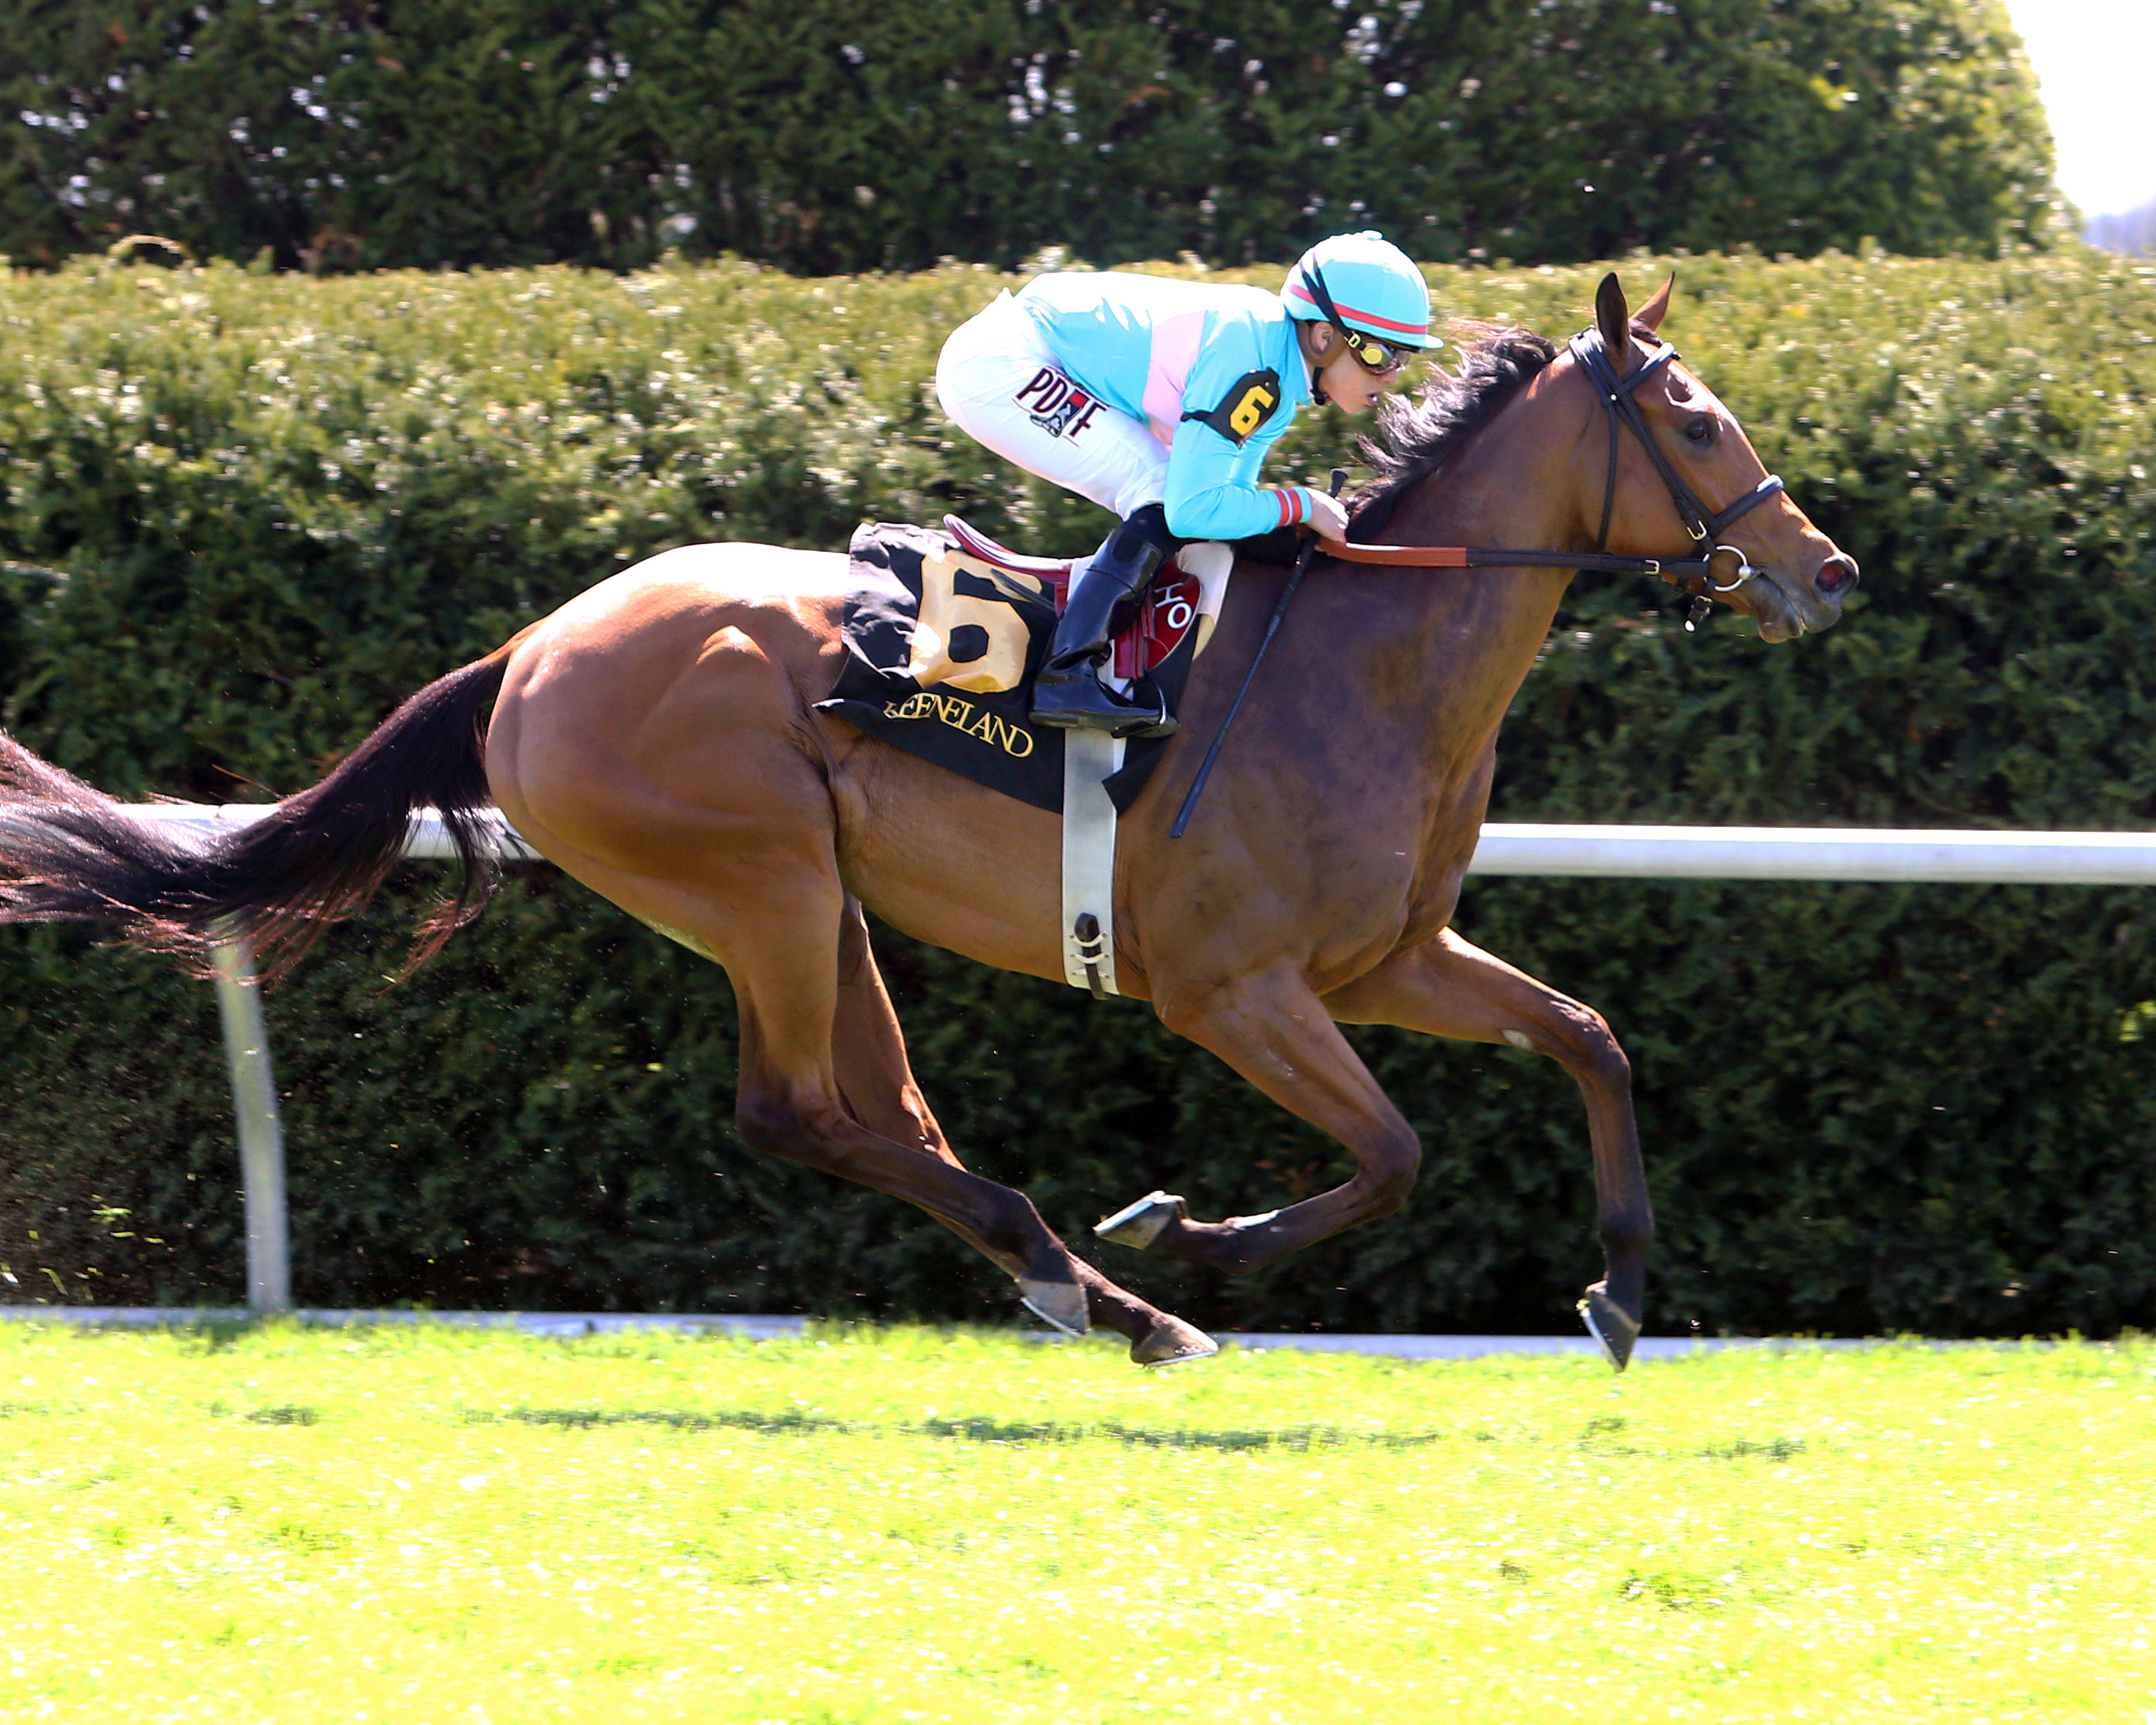 Keeneland Sales Graduates Dominate Belmont's Stars and Stripes Racing Festival